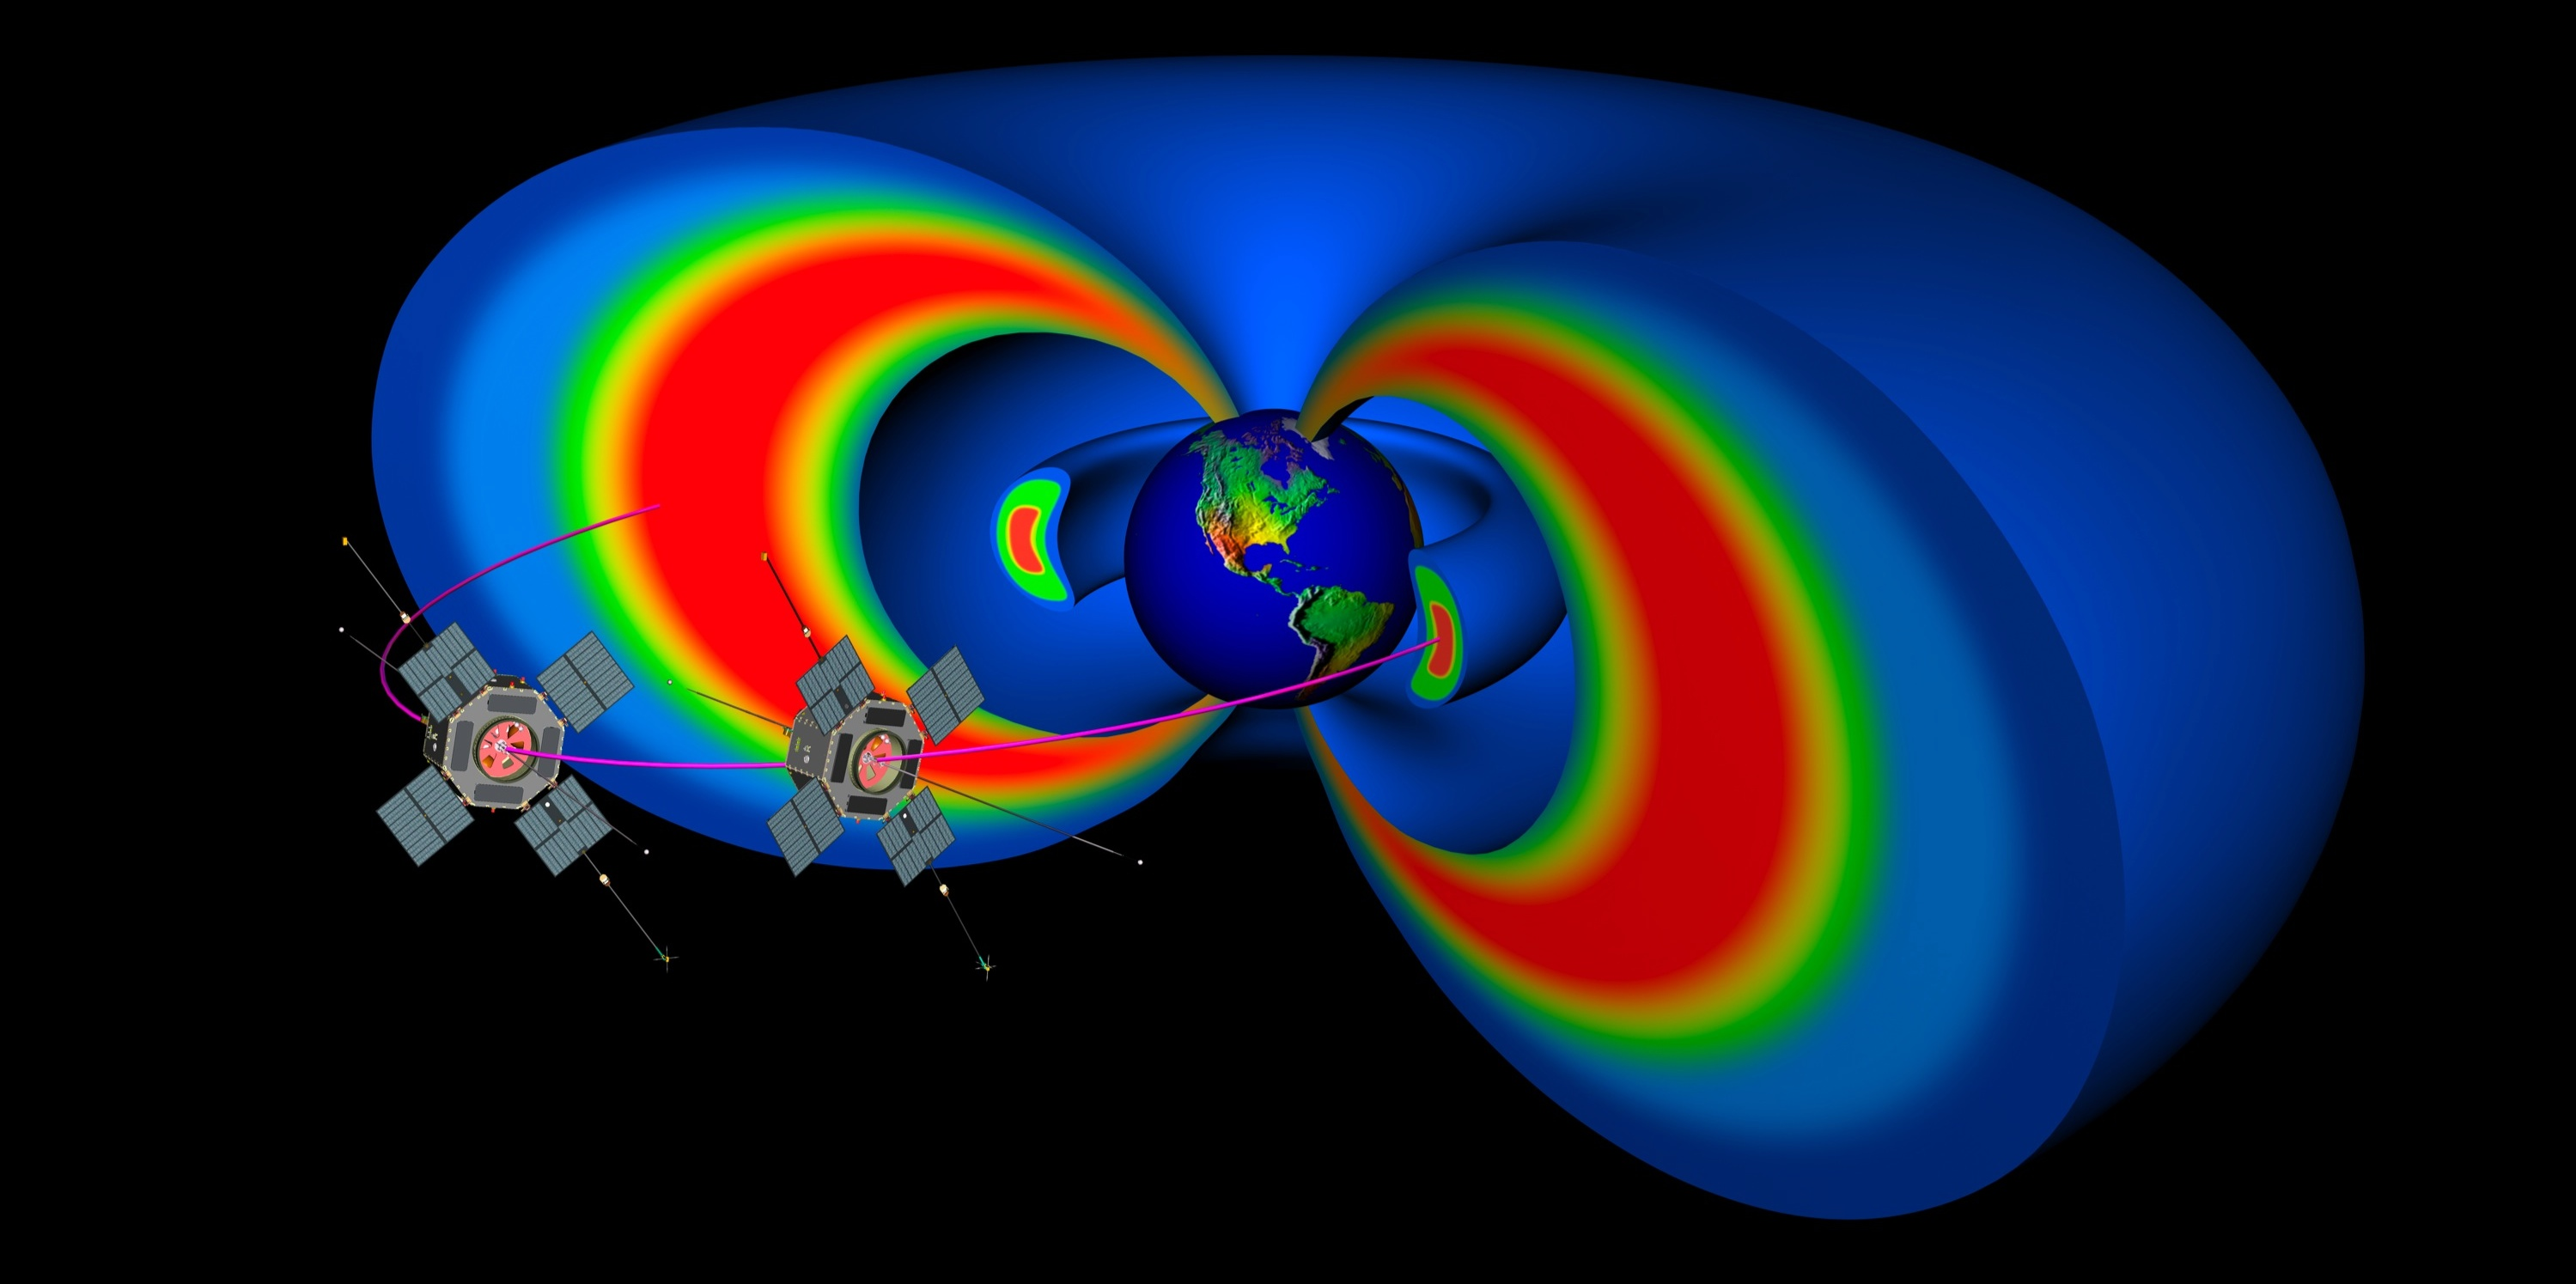 Model of the Earth's Van Allen radiation belts with the 2 satellites from NASA's Radiation Belt Storm Probes pictured. Credit: NASA